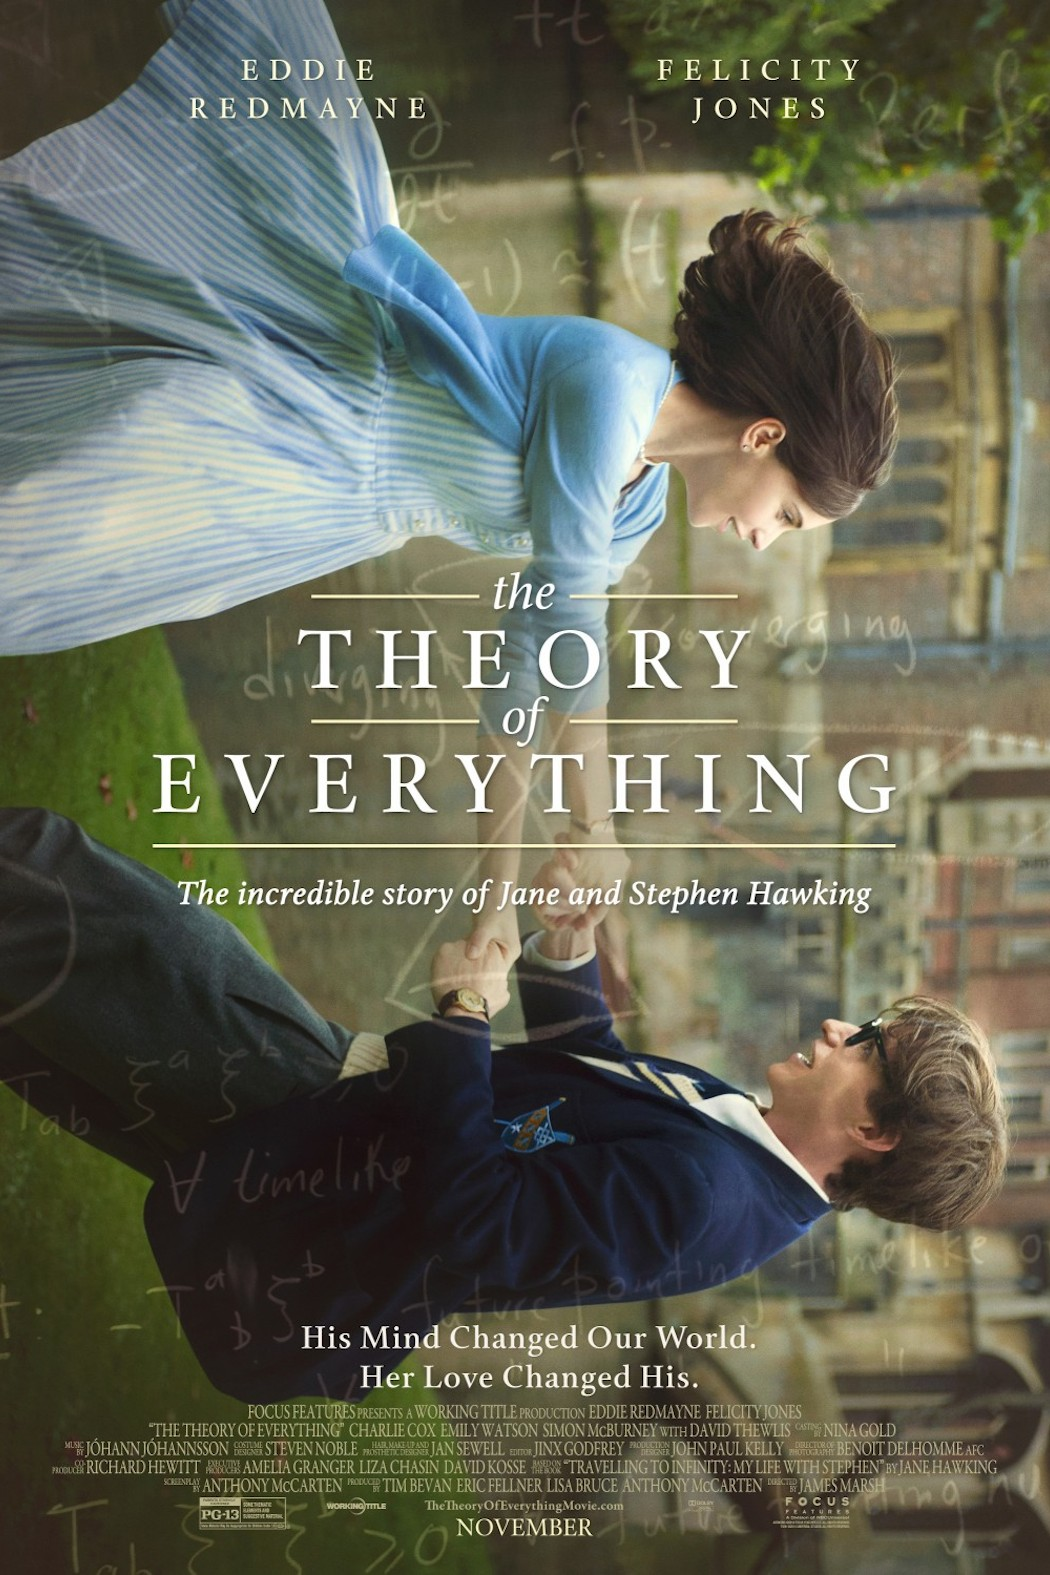 The Theory of Everything #film 1 www.impawards.com